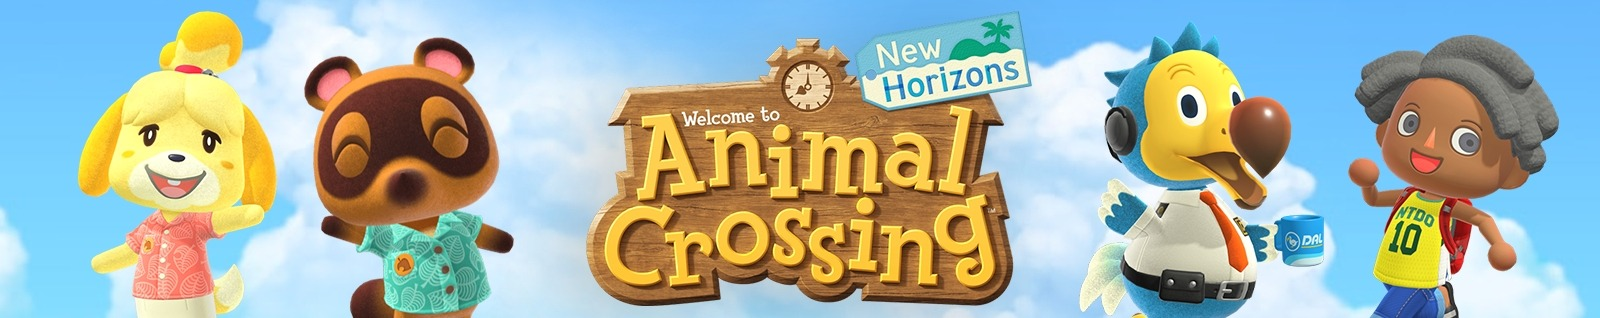 Animal Crossing: New Horizons Switch